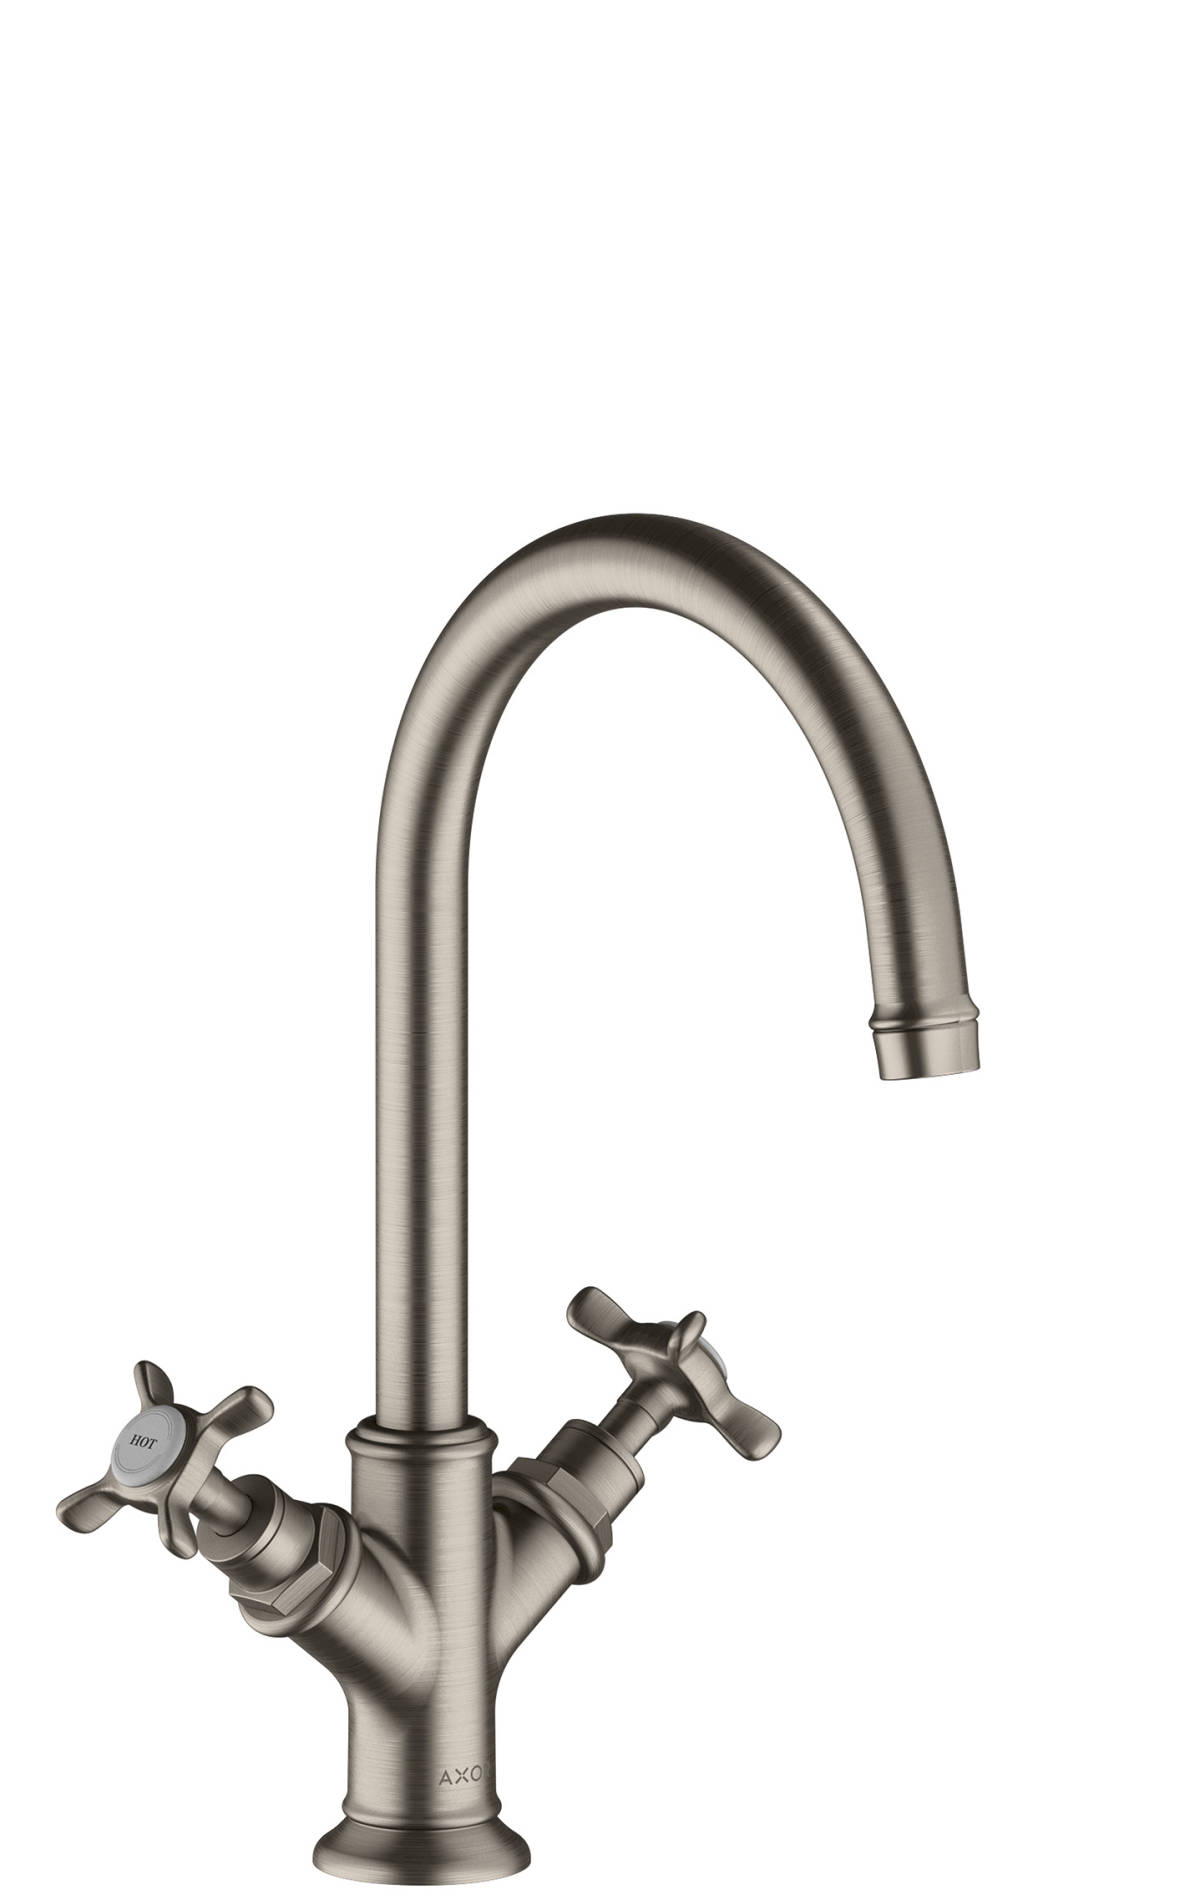 2-handle basin mixer 210 with cross handles and waste set, Stainless Steel Optic, 16506800